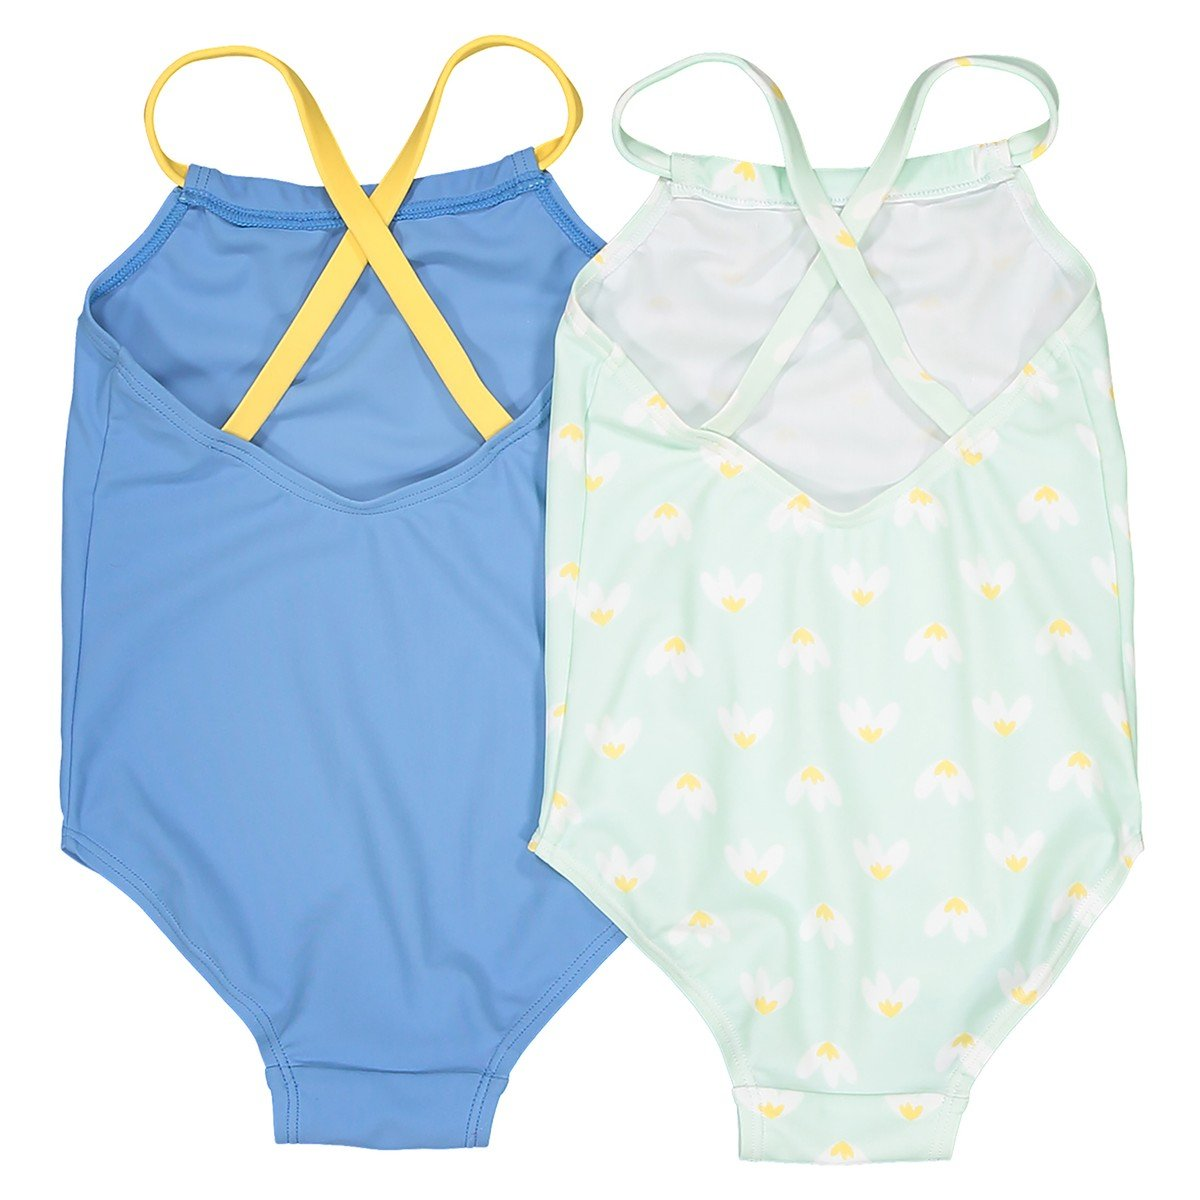 La Redoute Collections Big Girls Pack of 2 Swimsuits